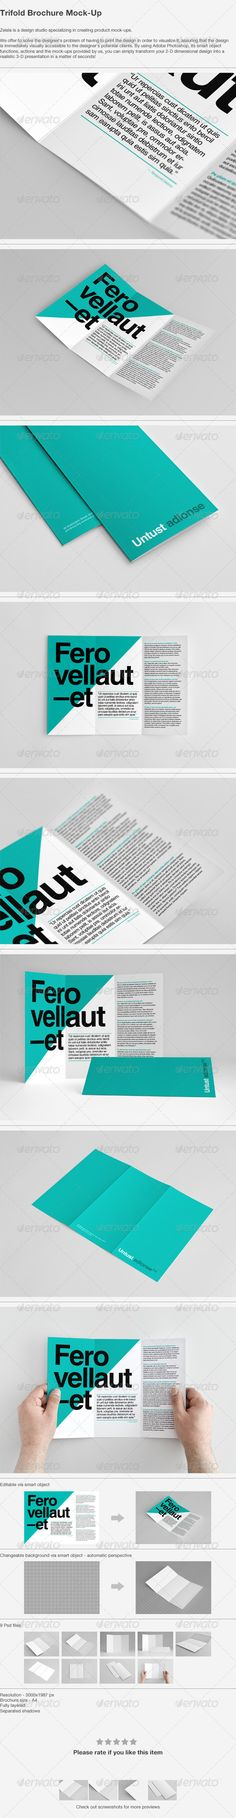 Download Free A5 Brochure Mockup Psd Yellow Images